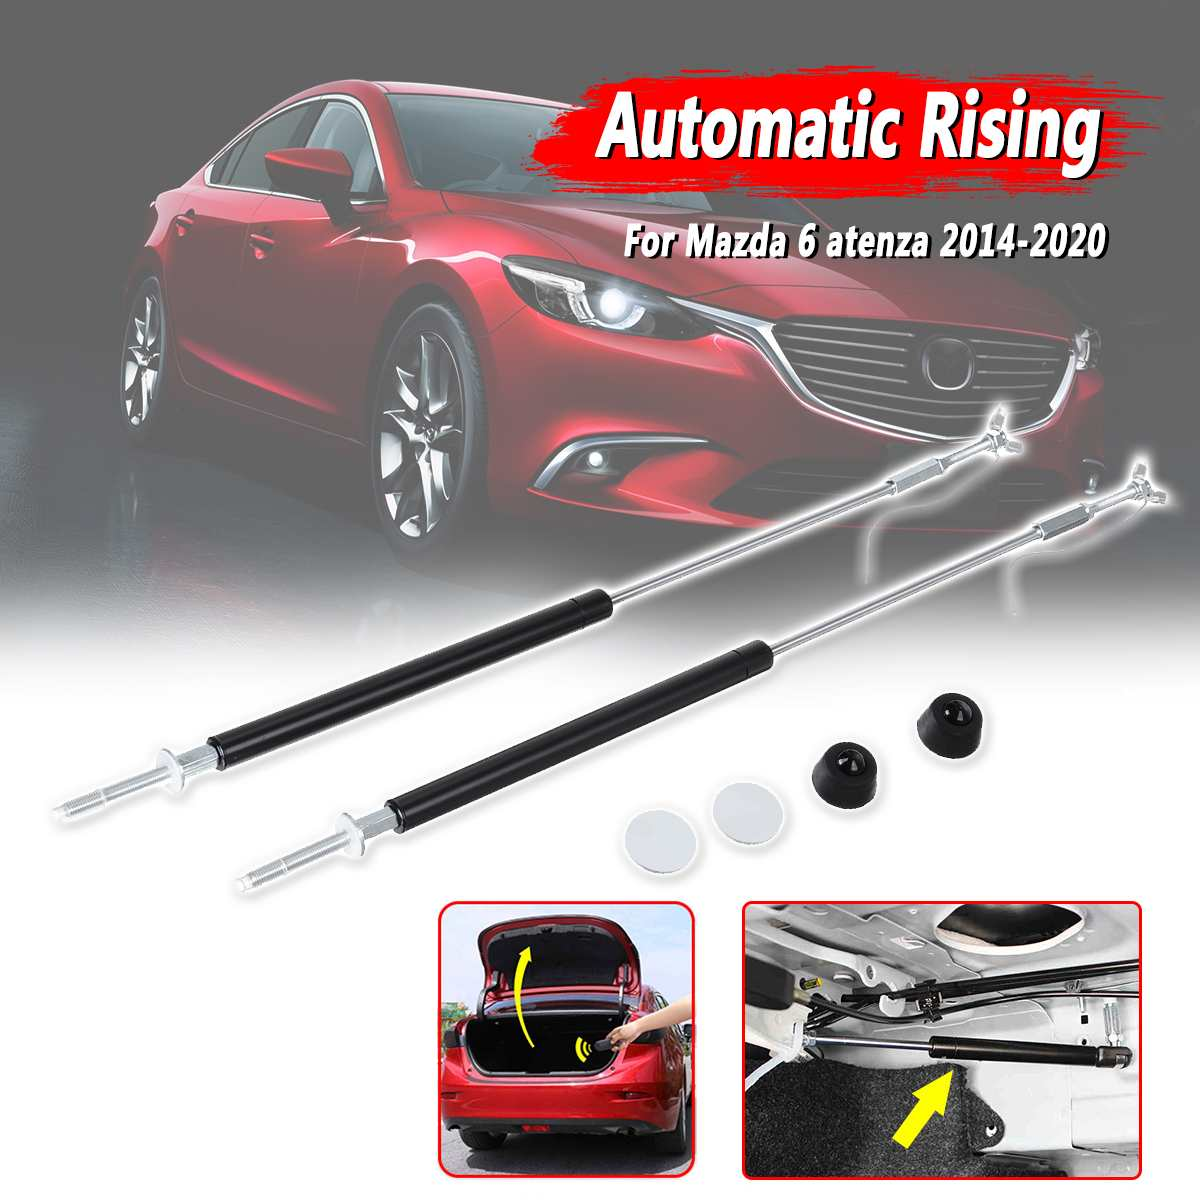 2Pcs Rear Tailgate Boot Automatic Gas Struts Spring Support Lifter For Mazda 6 Atenza 2014-2020(China)